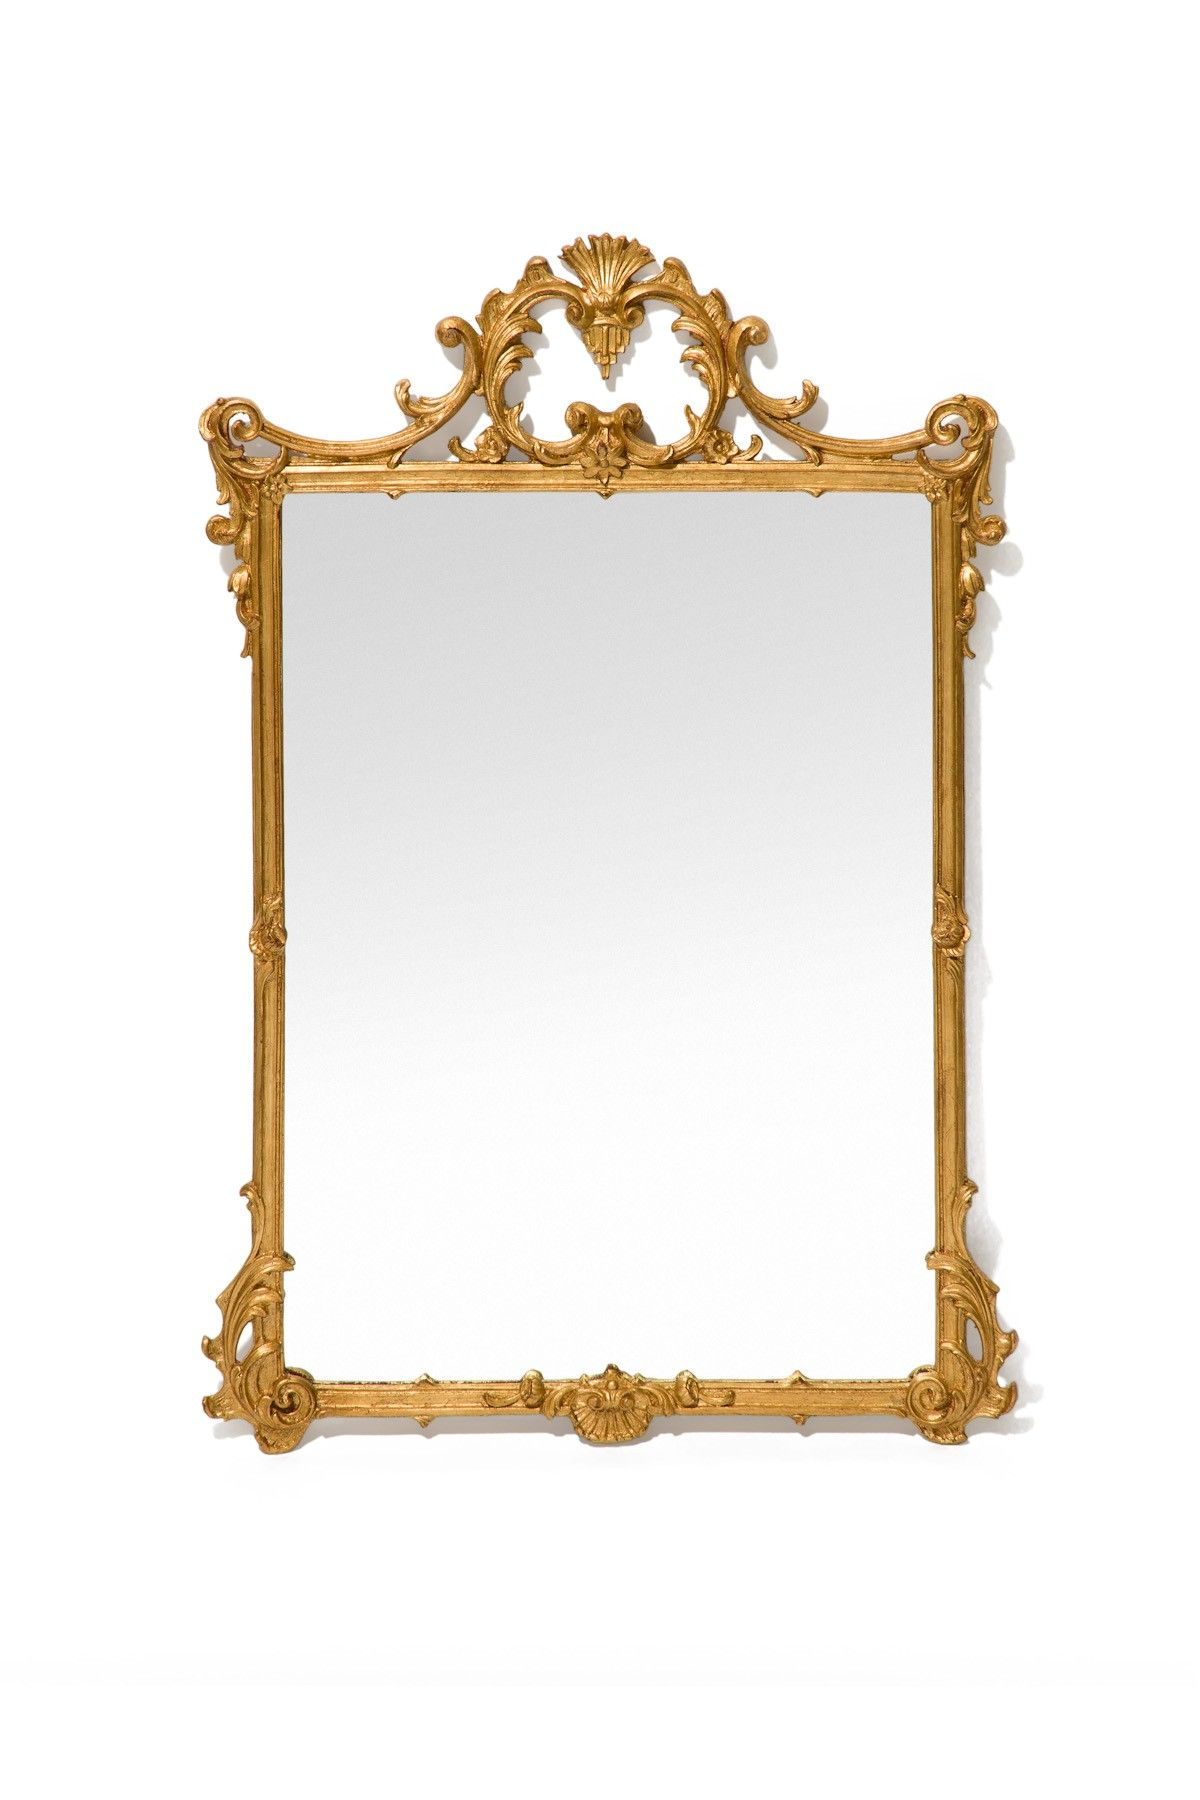 The Well Appointed House Luxury Home Decor Elegant Wall Mirror In Gold 572 Barbara Cosgrove Miroir Encadrement Bois Decoration Trumeau